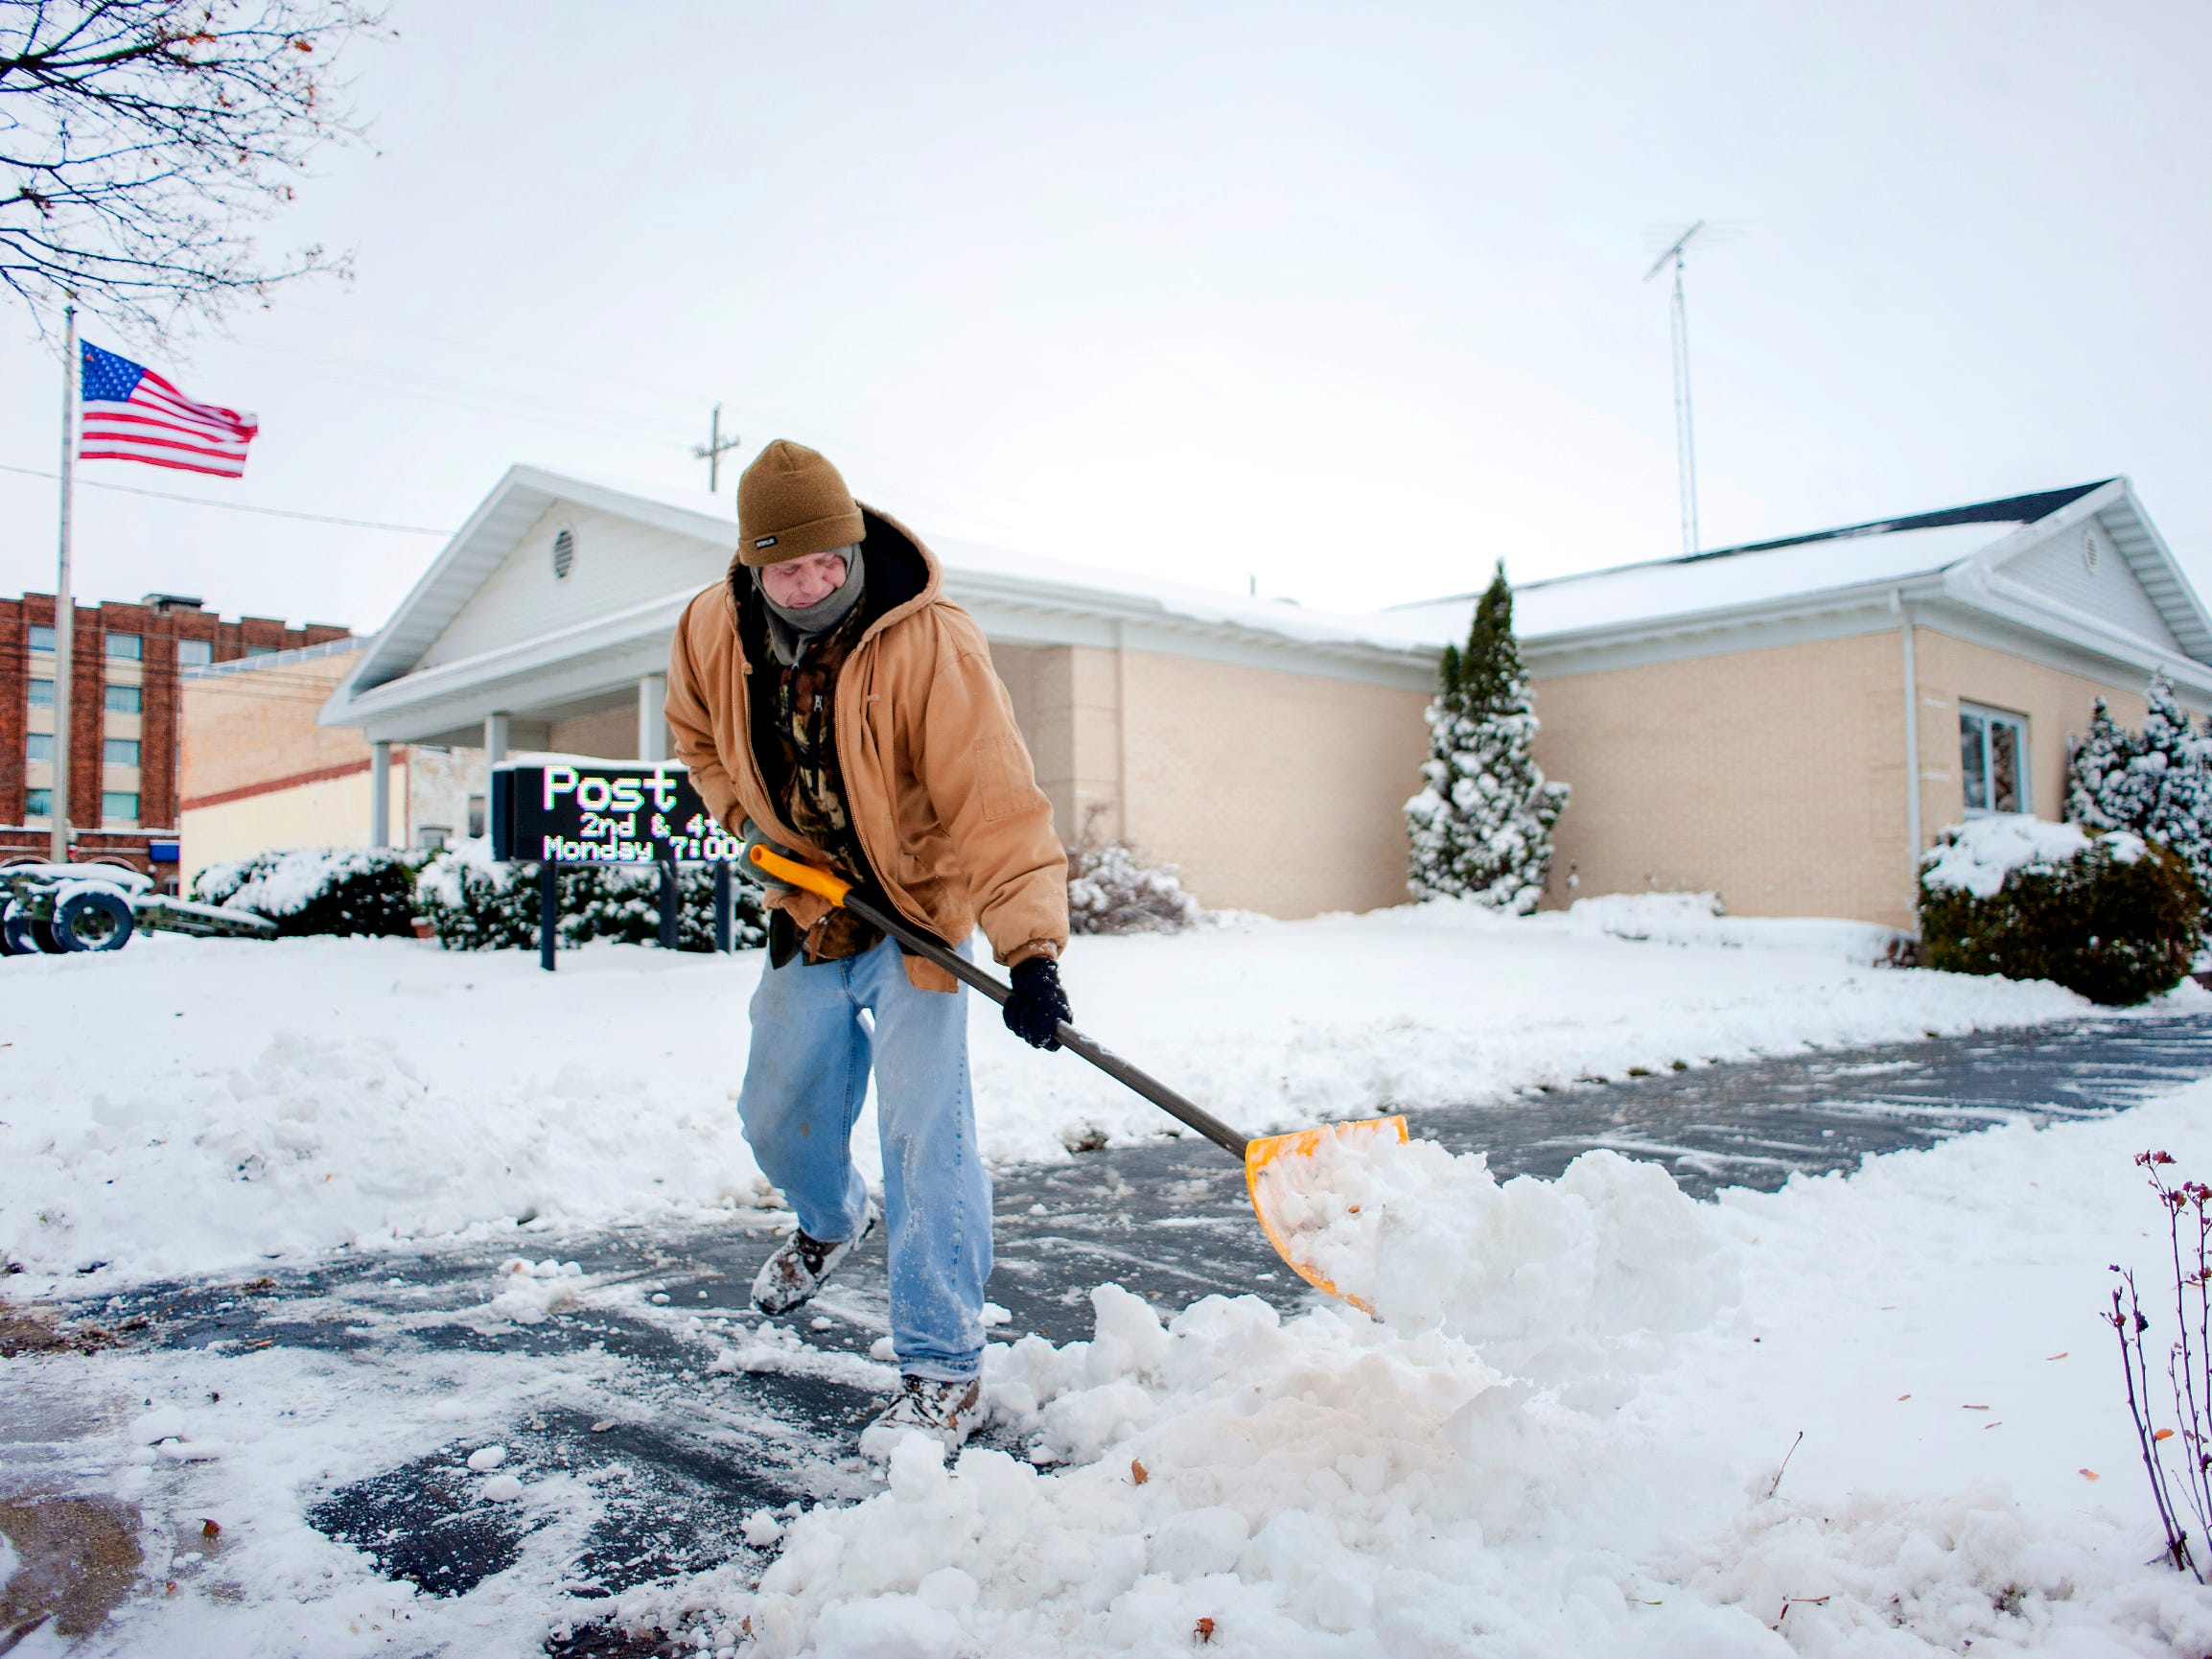 John Loomer, commander of the American Legion Post 95 in Delavan, Wis., shovels walkways around the post building on Nov. 26, 2018. Loomer is a teacher at Lakeland School in Elkhorn, Wis. and had the day off because of the weather conditions.